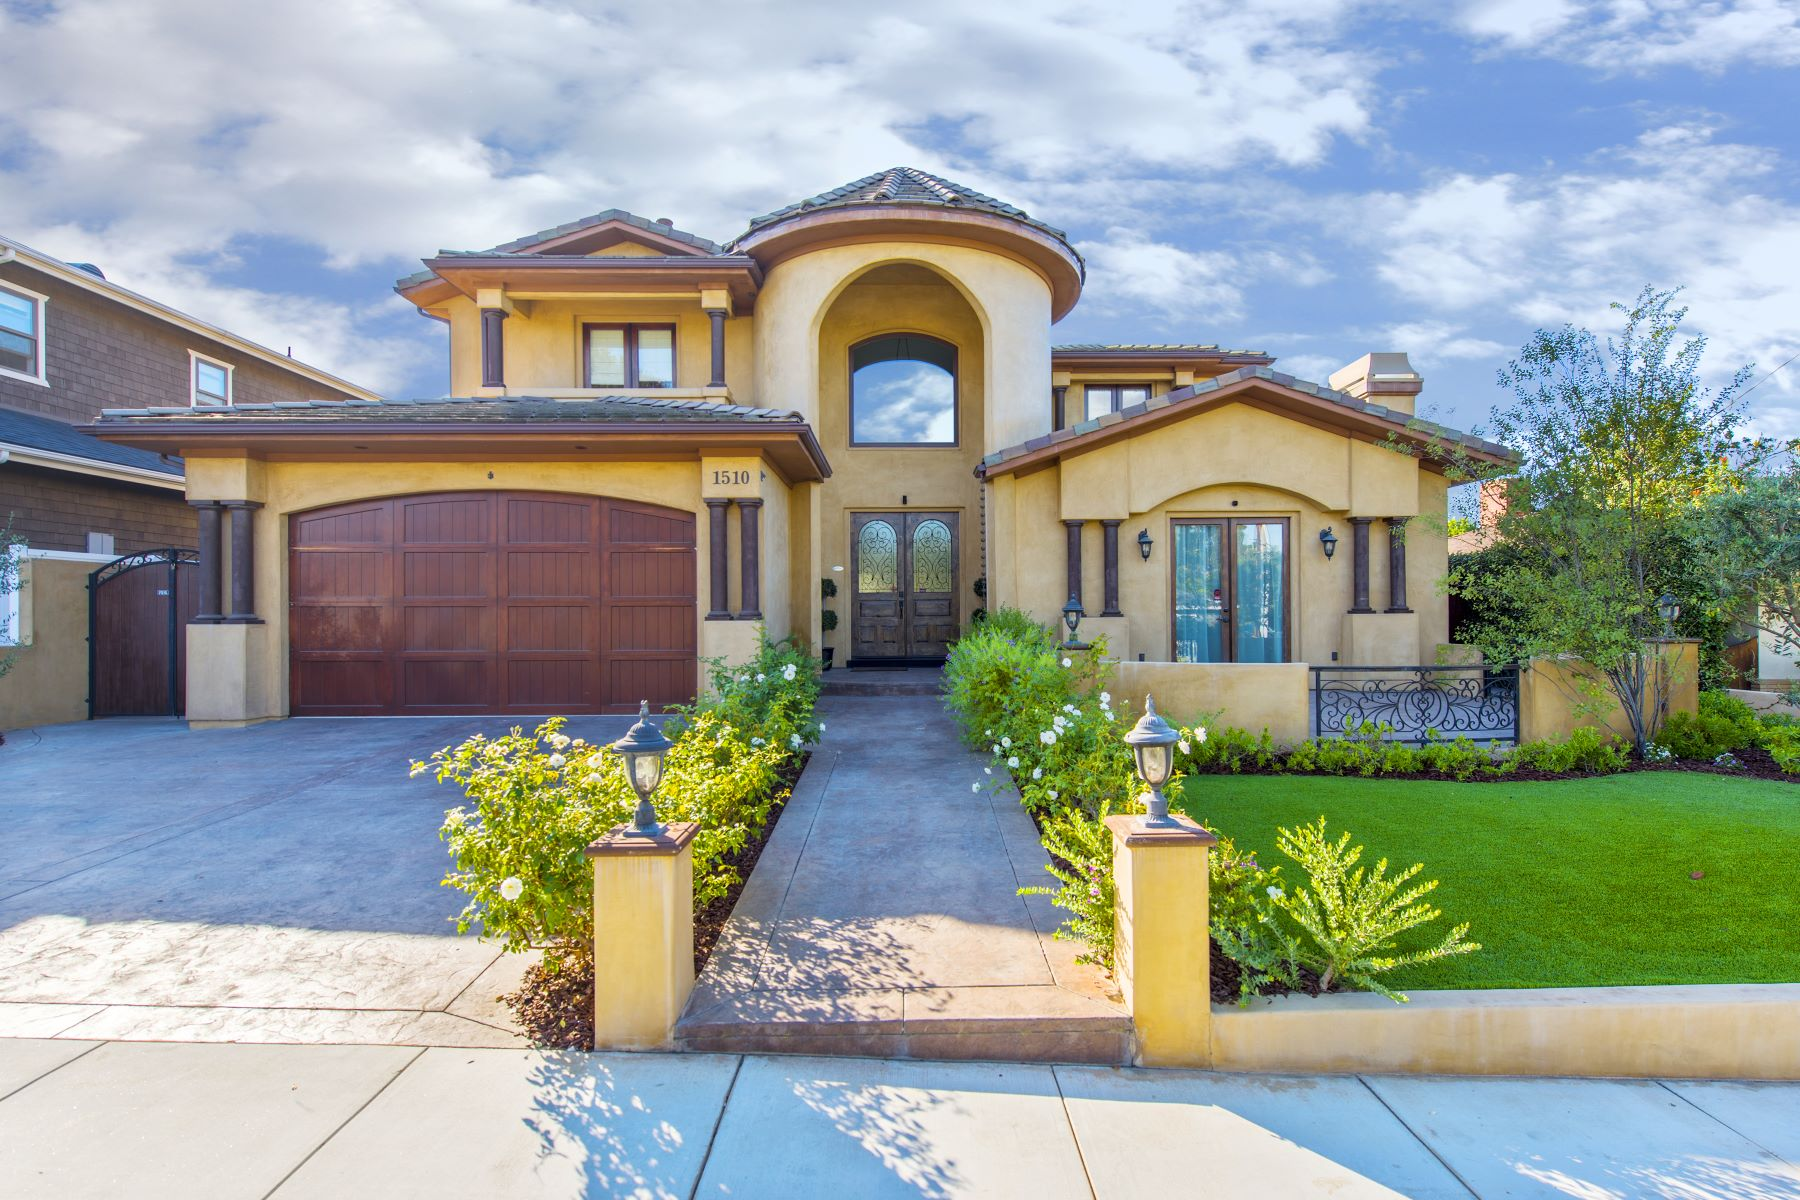 Single Family Homes for Sale at 1510 East Oak Avenue, El Segundo, CA 90245 1510 East Oak Avenue El Segundo, California 90245 United States